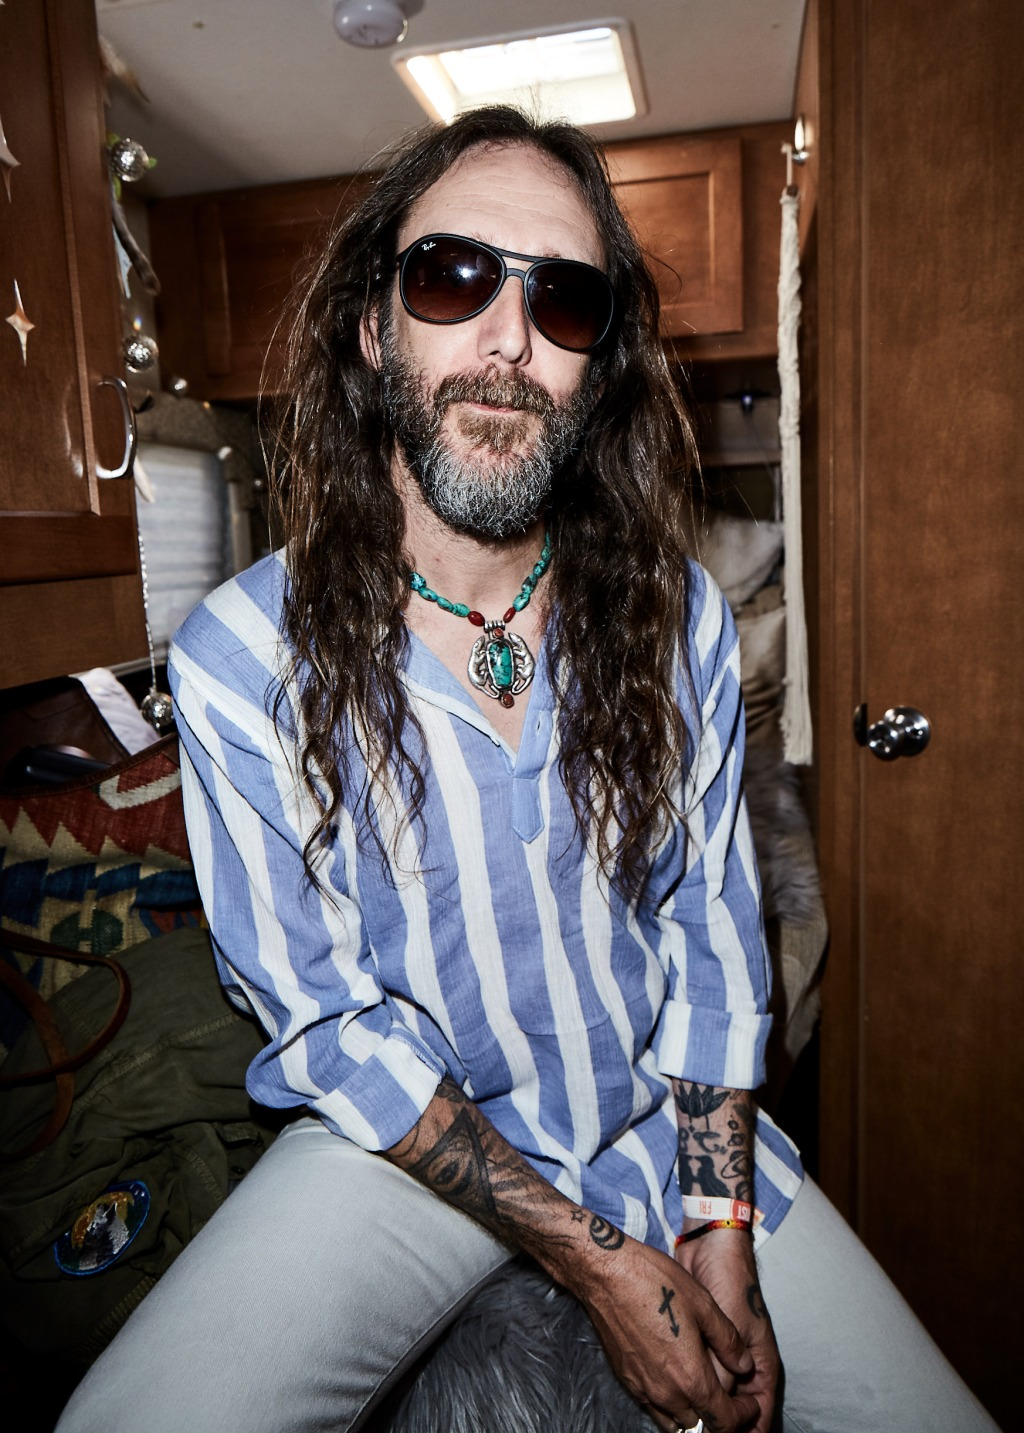 Chris Robinson backstage at BeachLife Music Festival in Redondo Beach, California on May 3-5th, 2019.